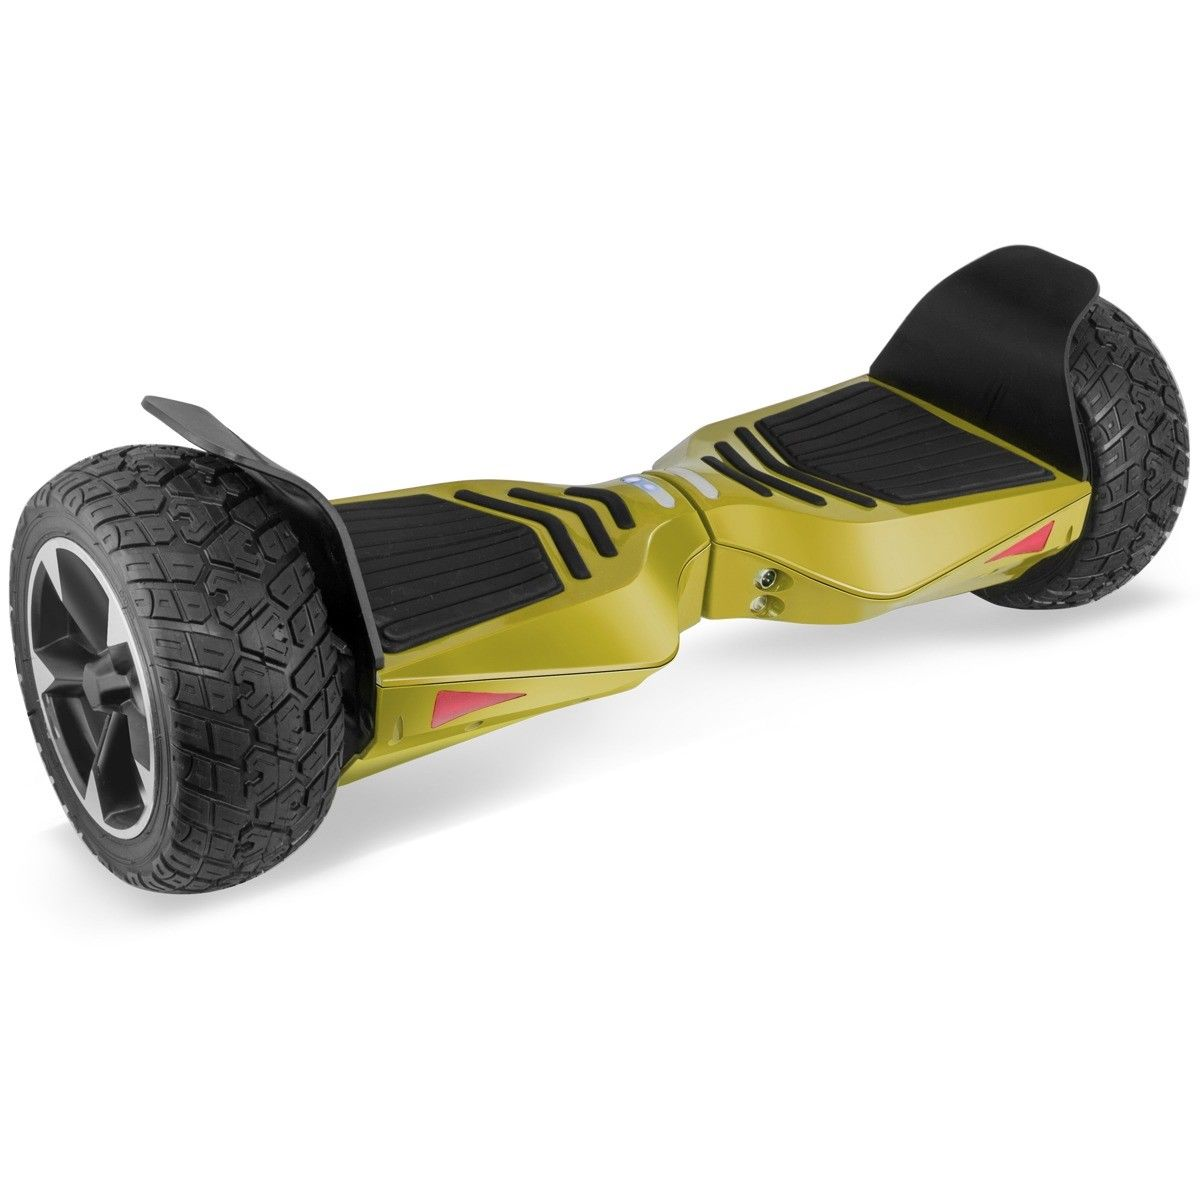 8-5-034-UL-2772-All-Terrain-Bluetooth-Hoverboard-by-XtremepowerUS